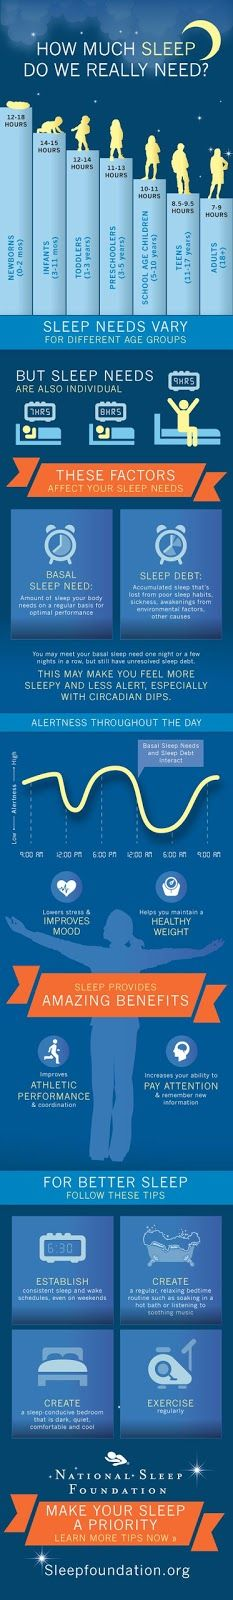 How Much Sleep Do We Really Need?  Infographic from the National Sleep Foundation   Sleep is an essential component of good physical, ment...